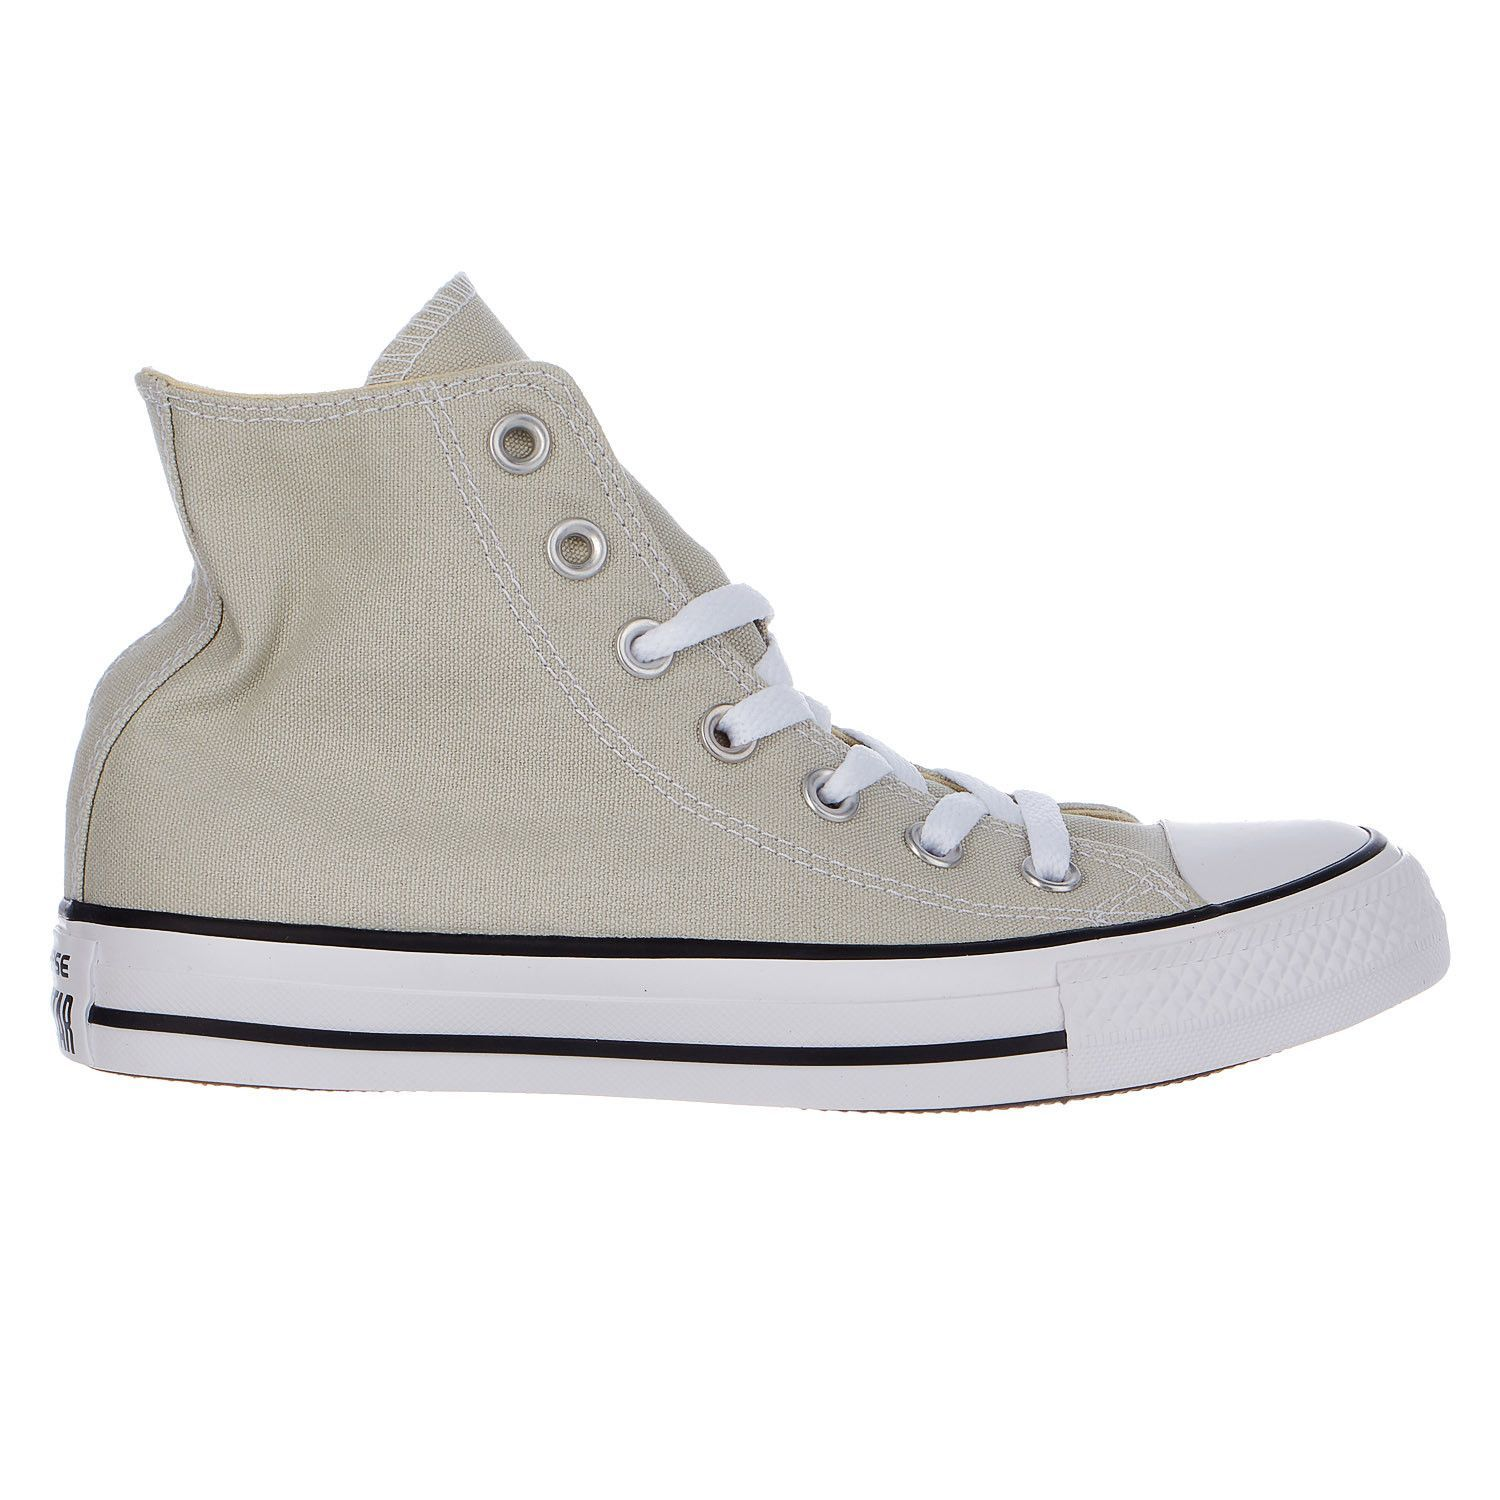 4a1373b7160a Converse Unisex Chuck Taylor All Star Hi Top Seasonal Fashion Sneaker Shoe  - Mens